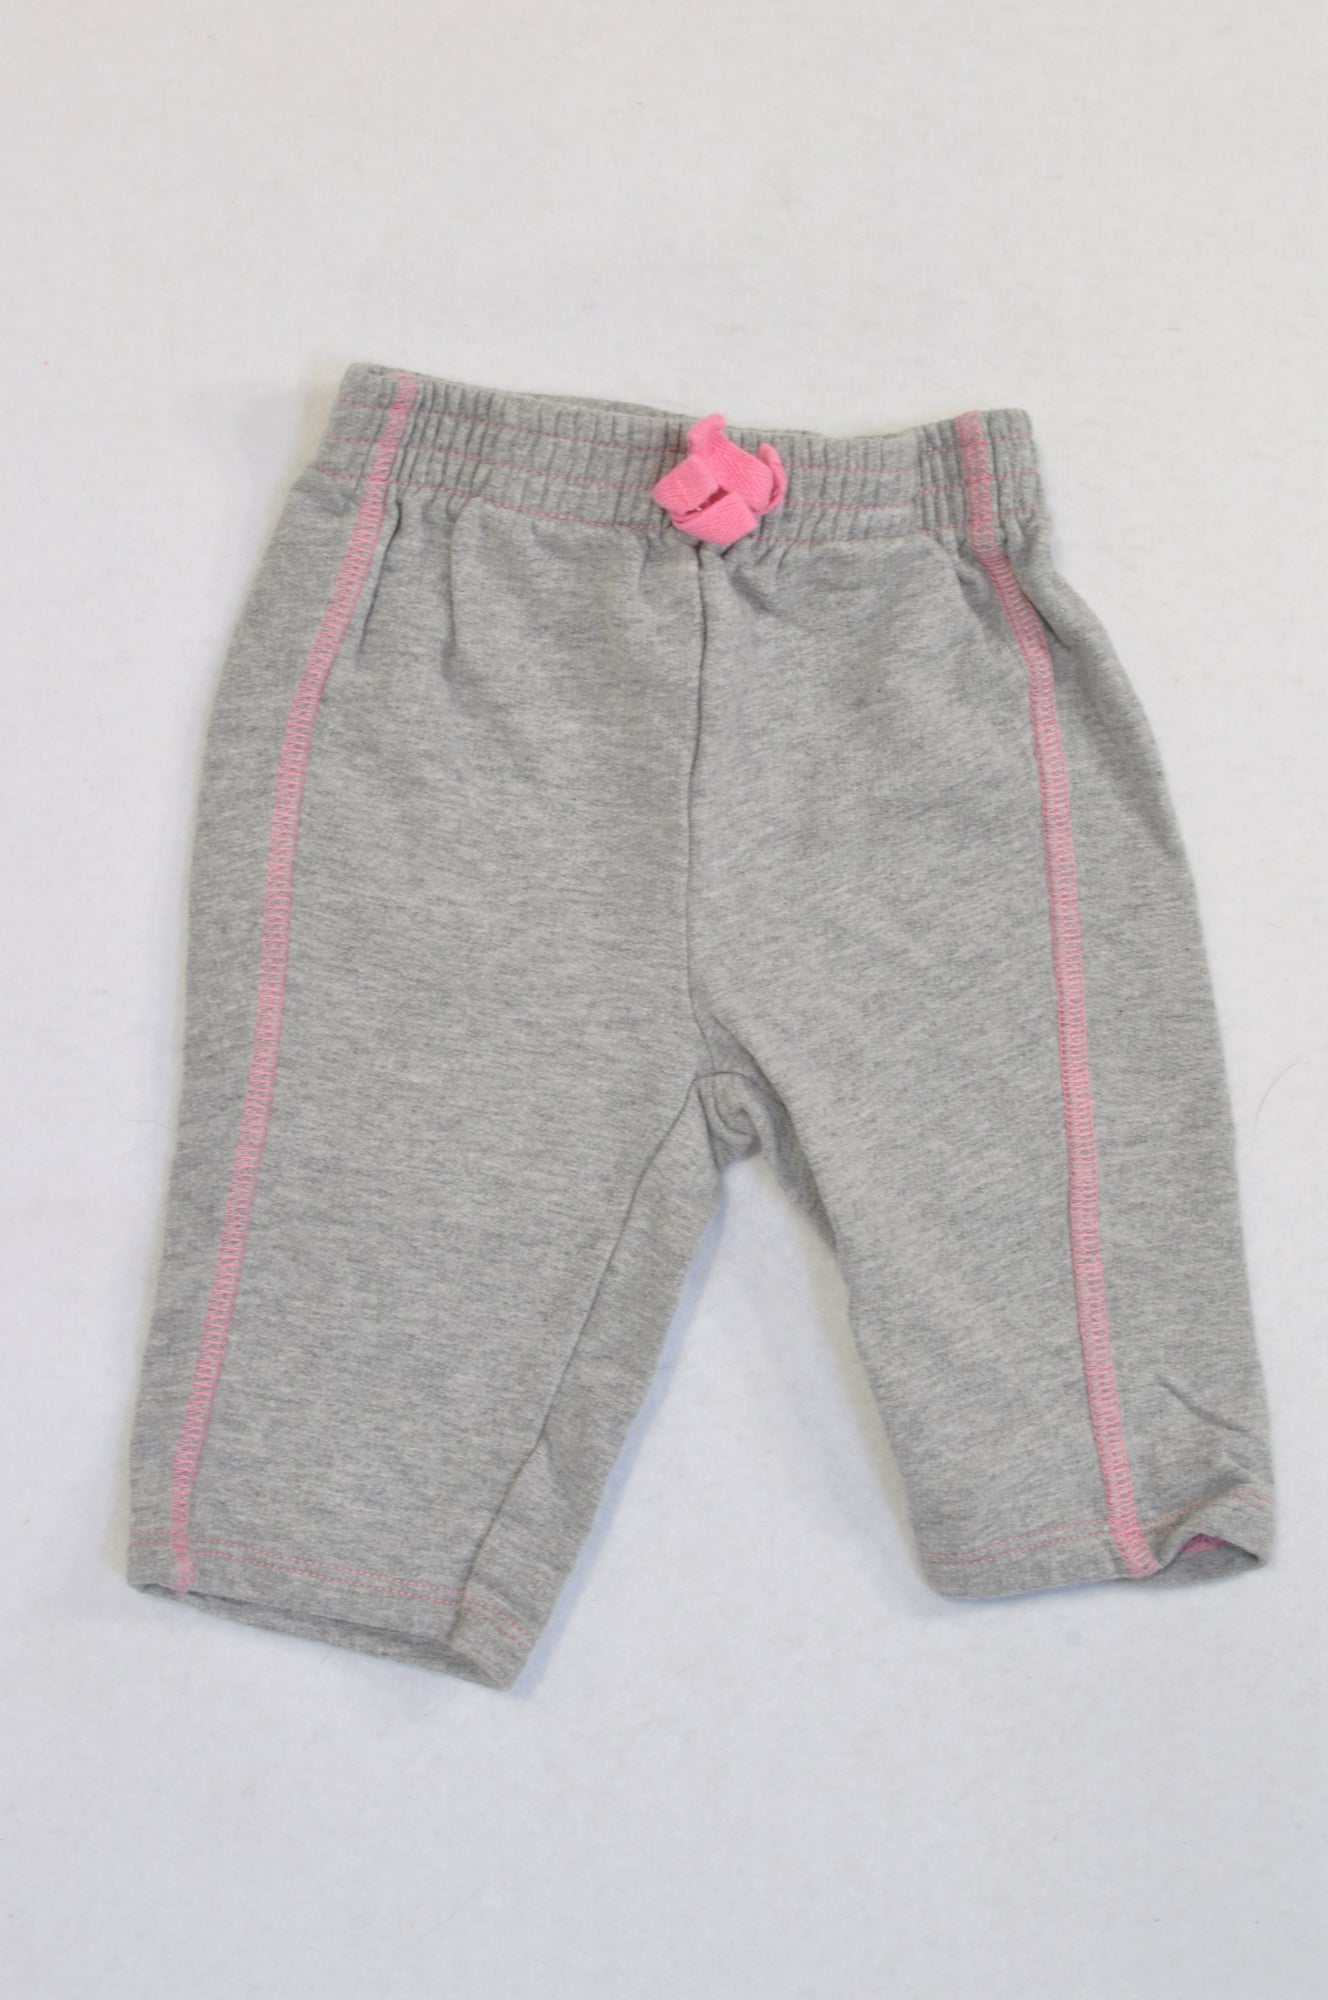 Woolworths Grey Pink Trim Bow Pants Girls 0-3 months